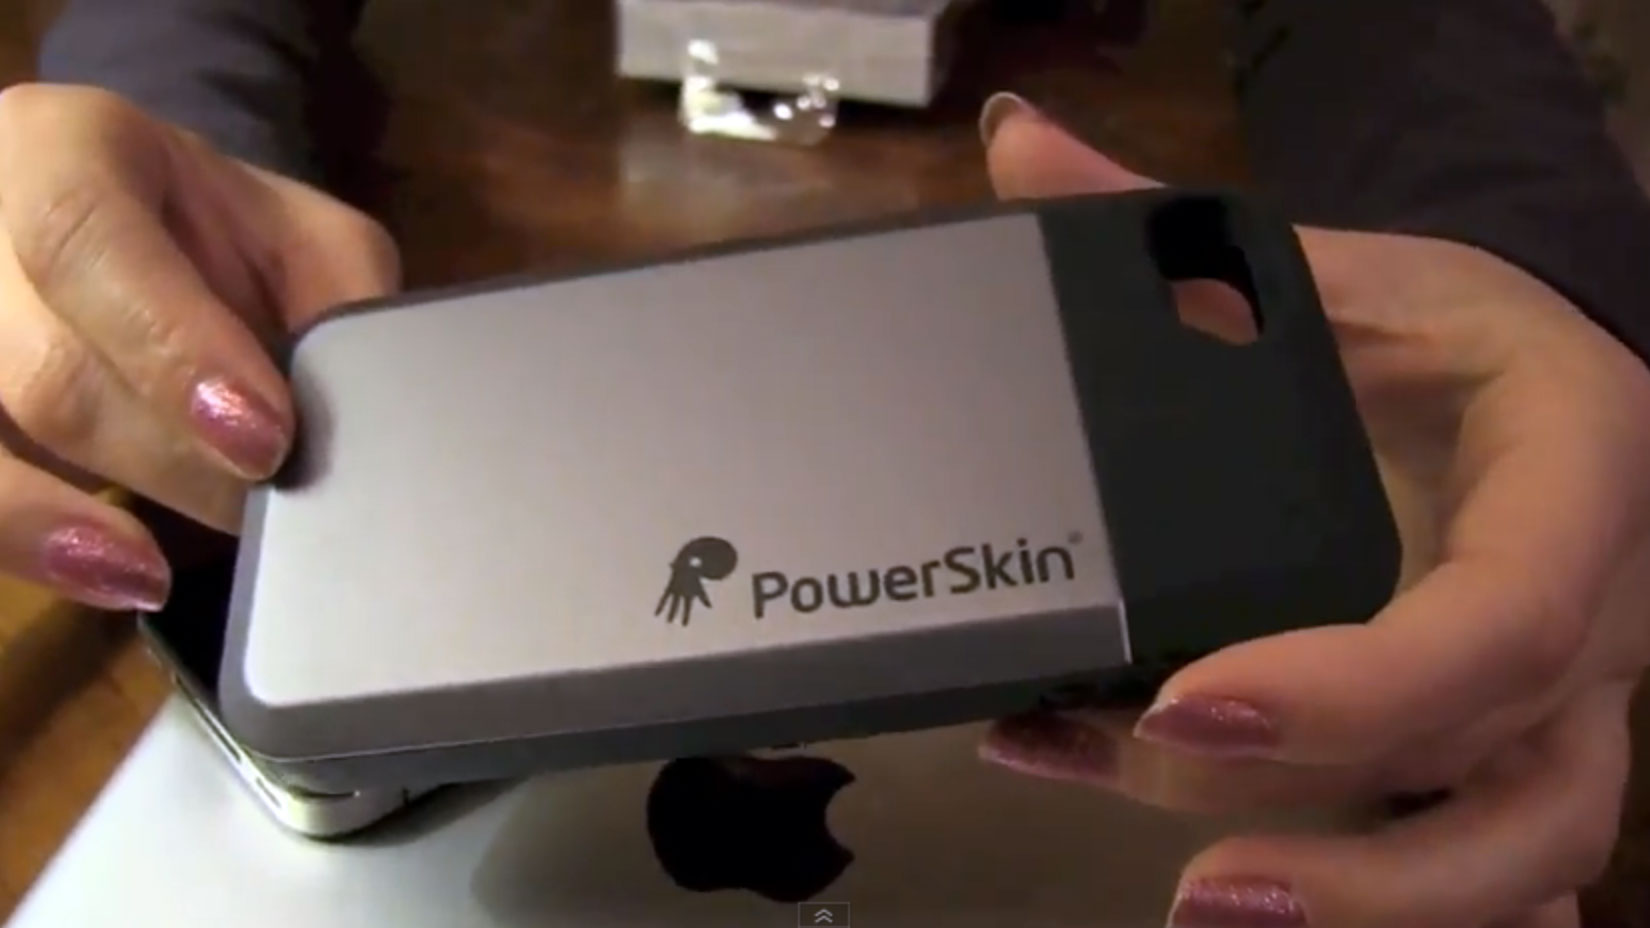 PowerSkin Battery Case for iPhone 4S and iPhone 4 review